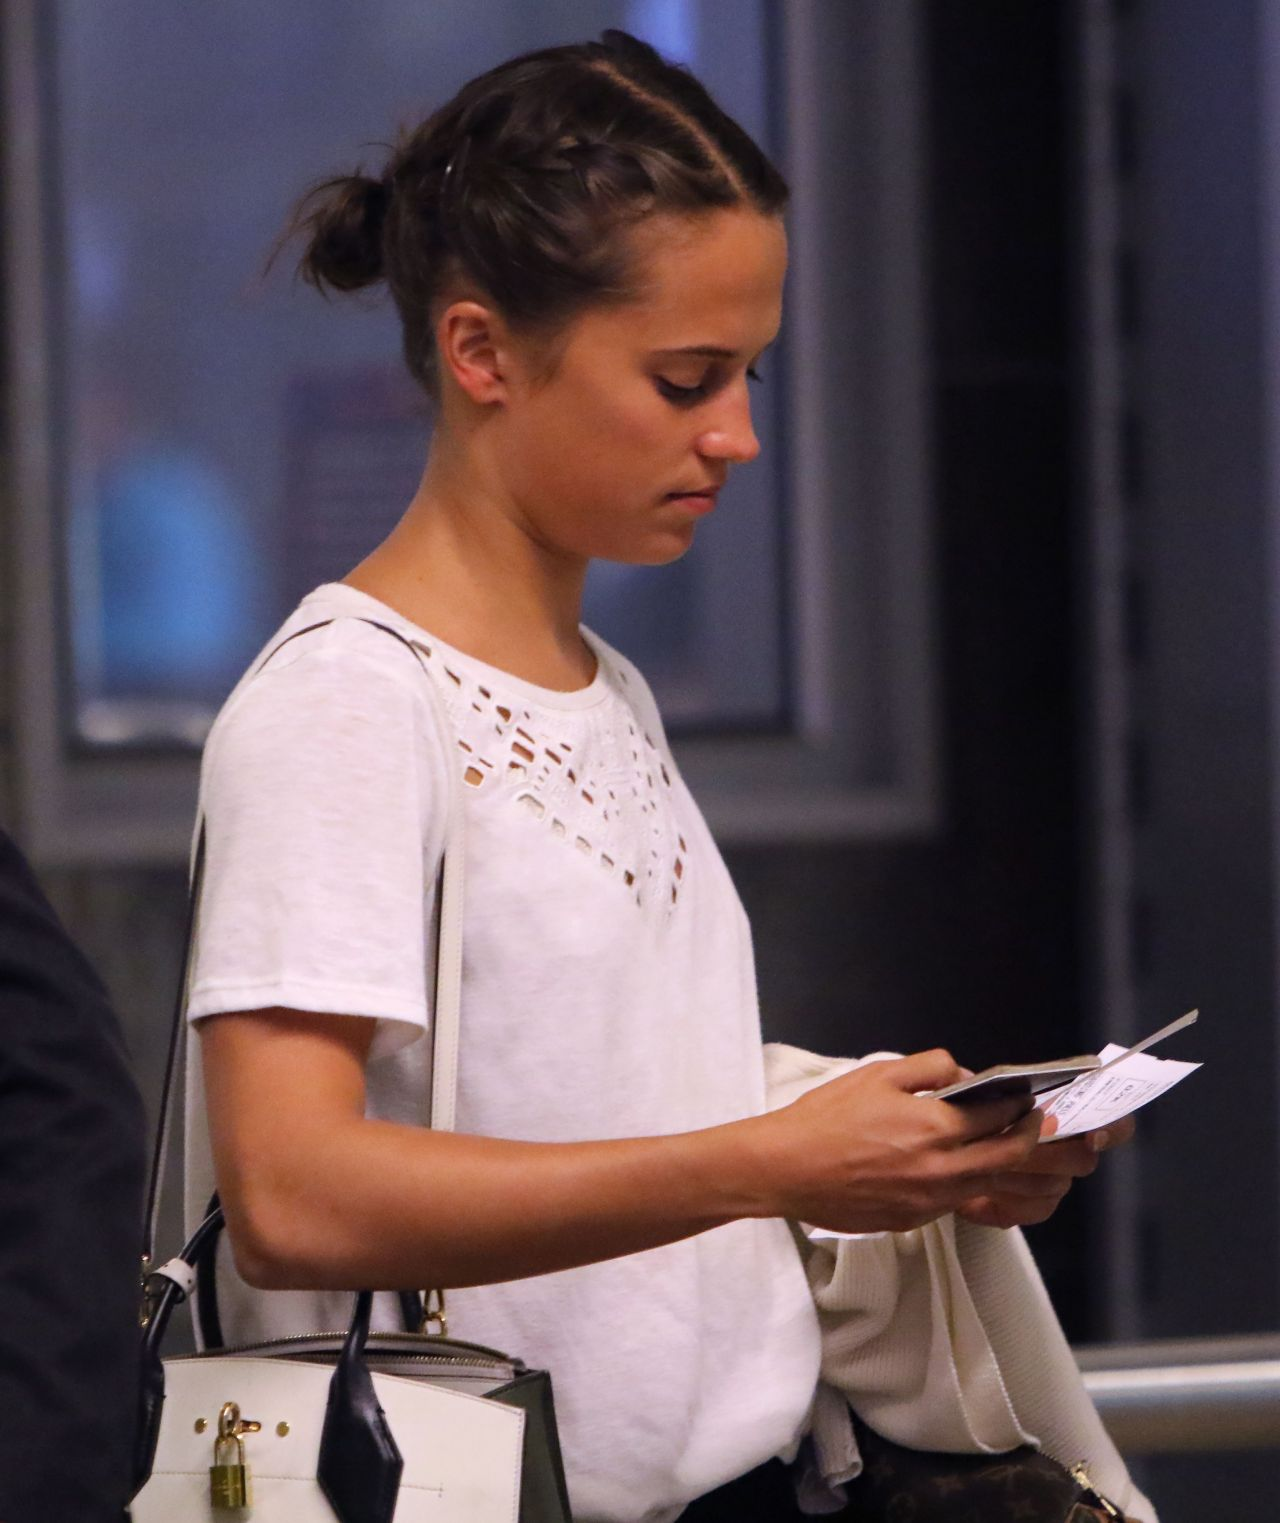 Alicia Vikander Jetting Out of Cape Town off to the Oscars ...